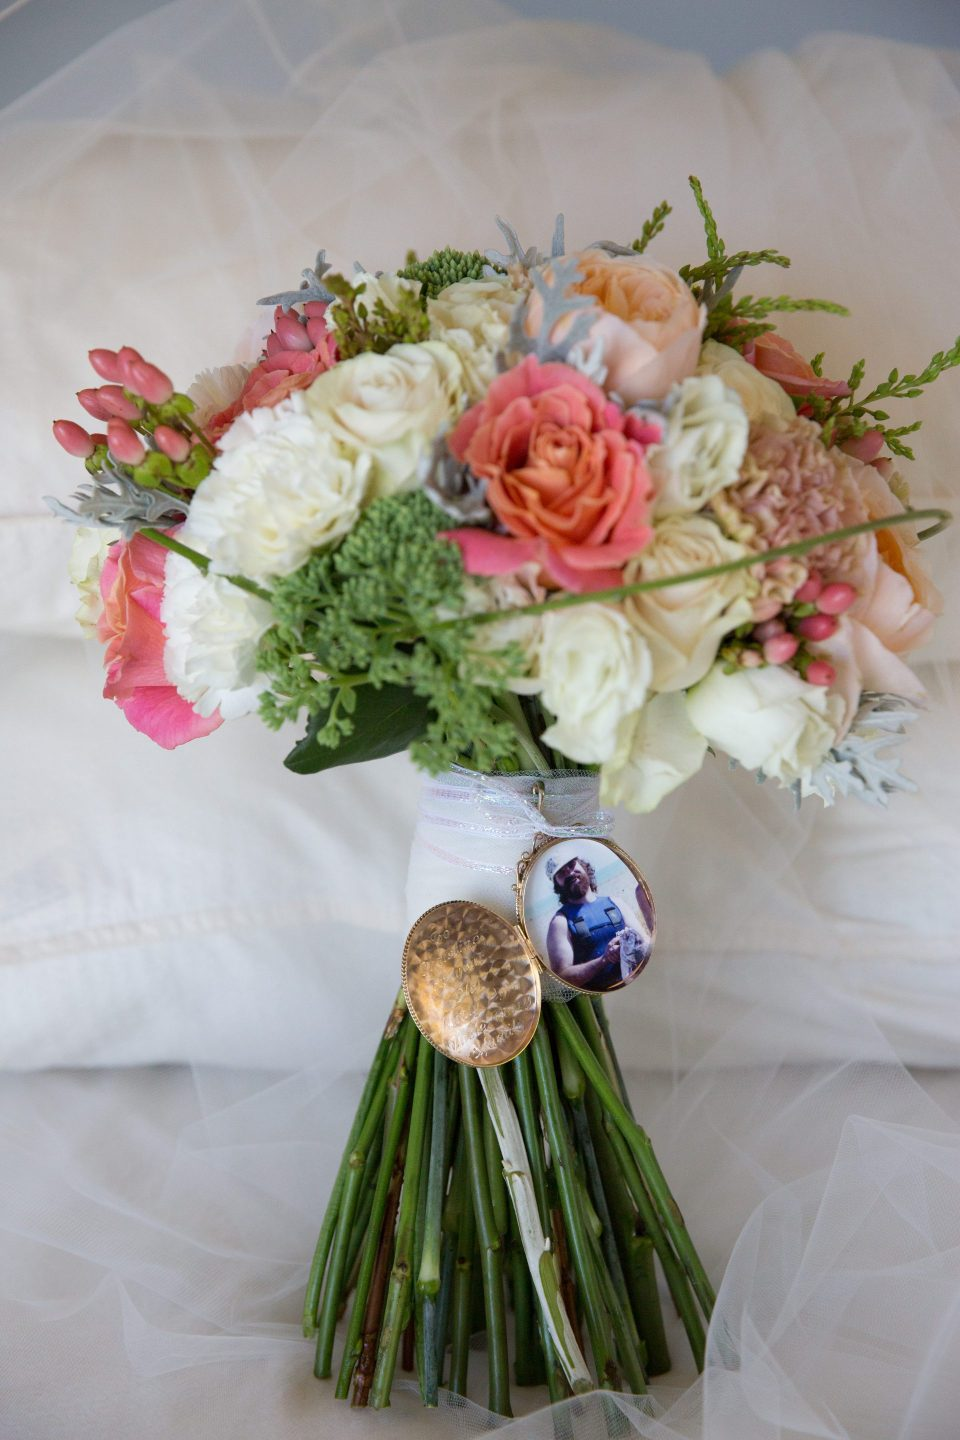 Chrissie and Rick - wedding bouquet charm